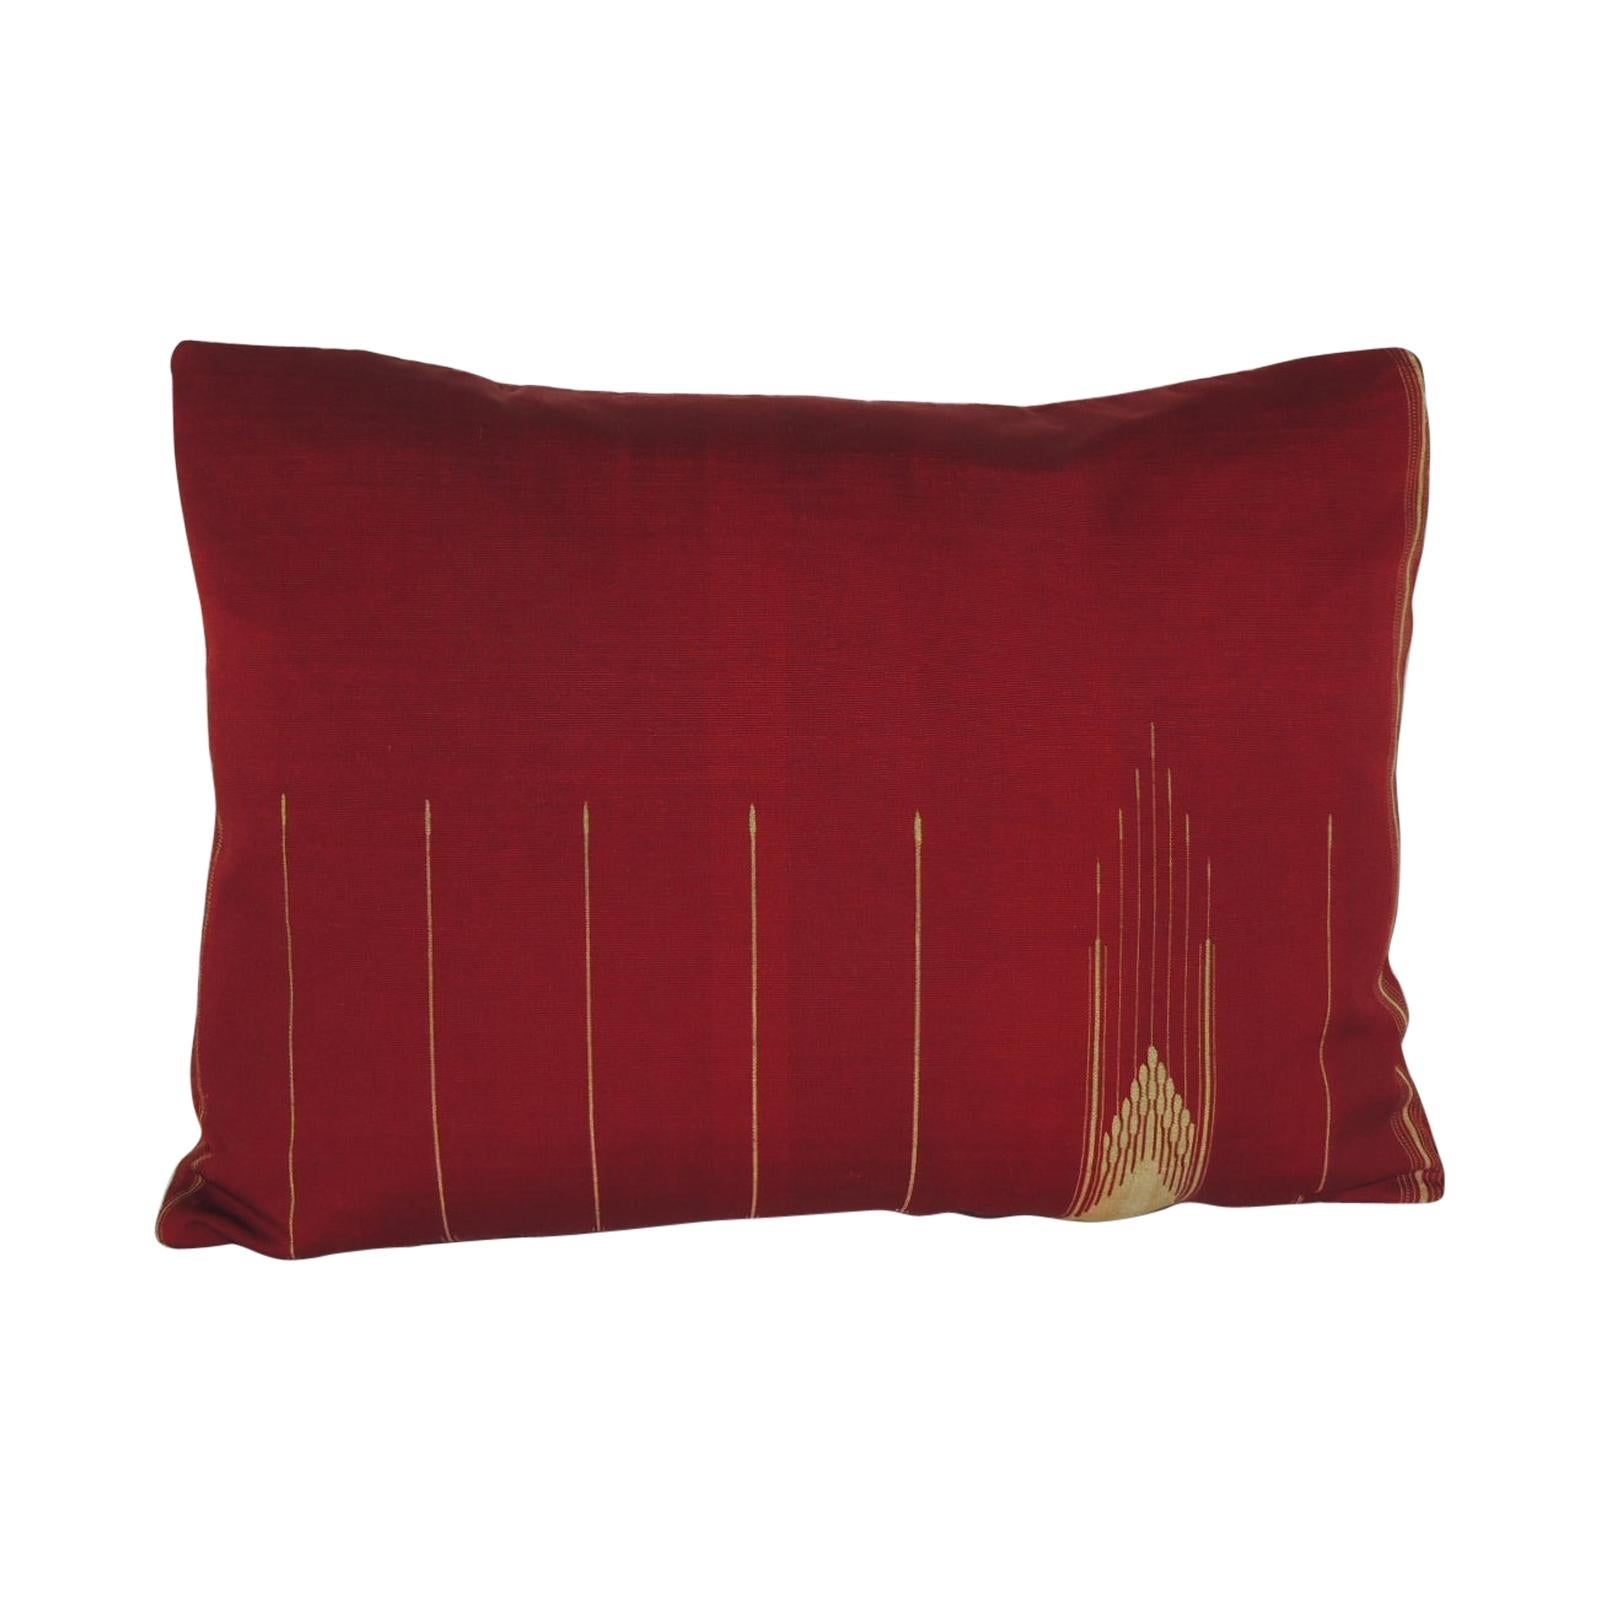 Antique Red and Gold Cotton Decorative Bolster Pillow